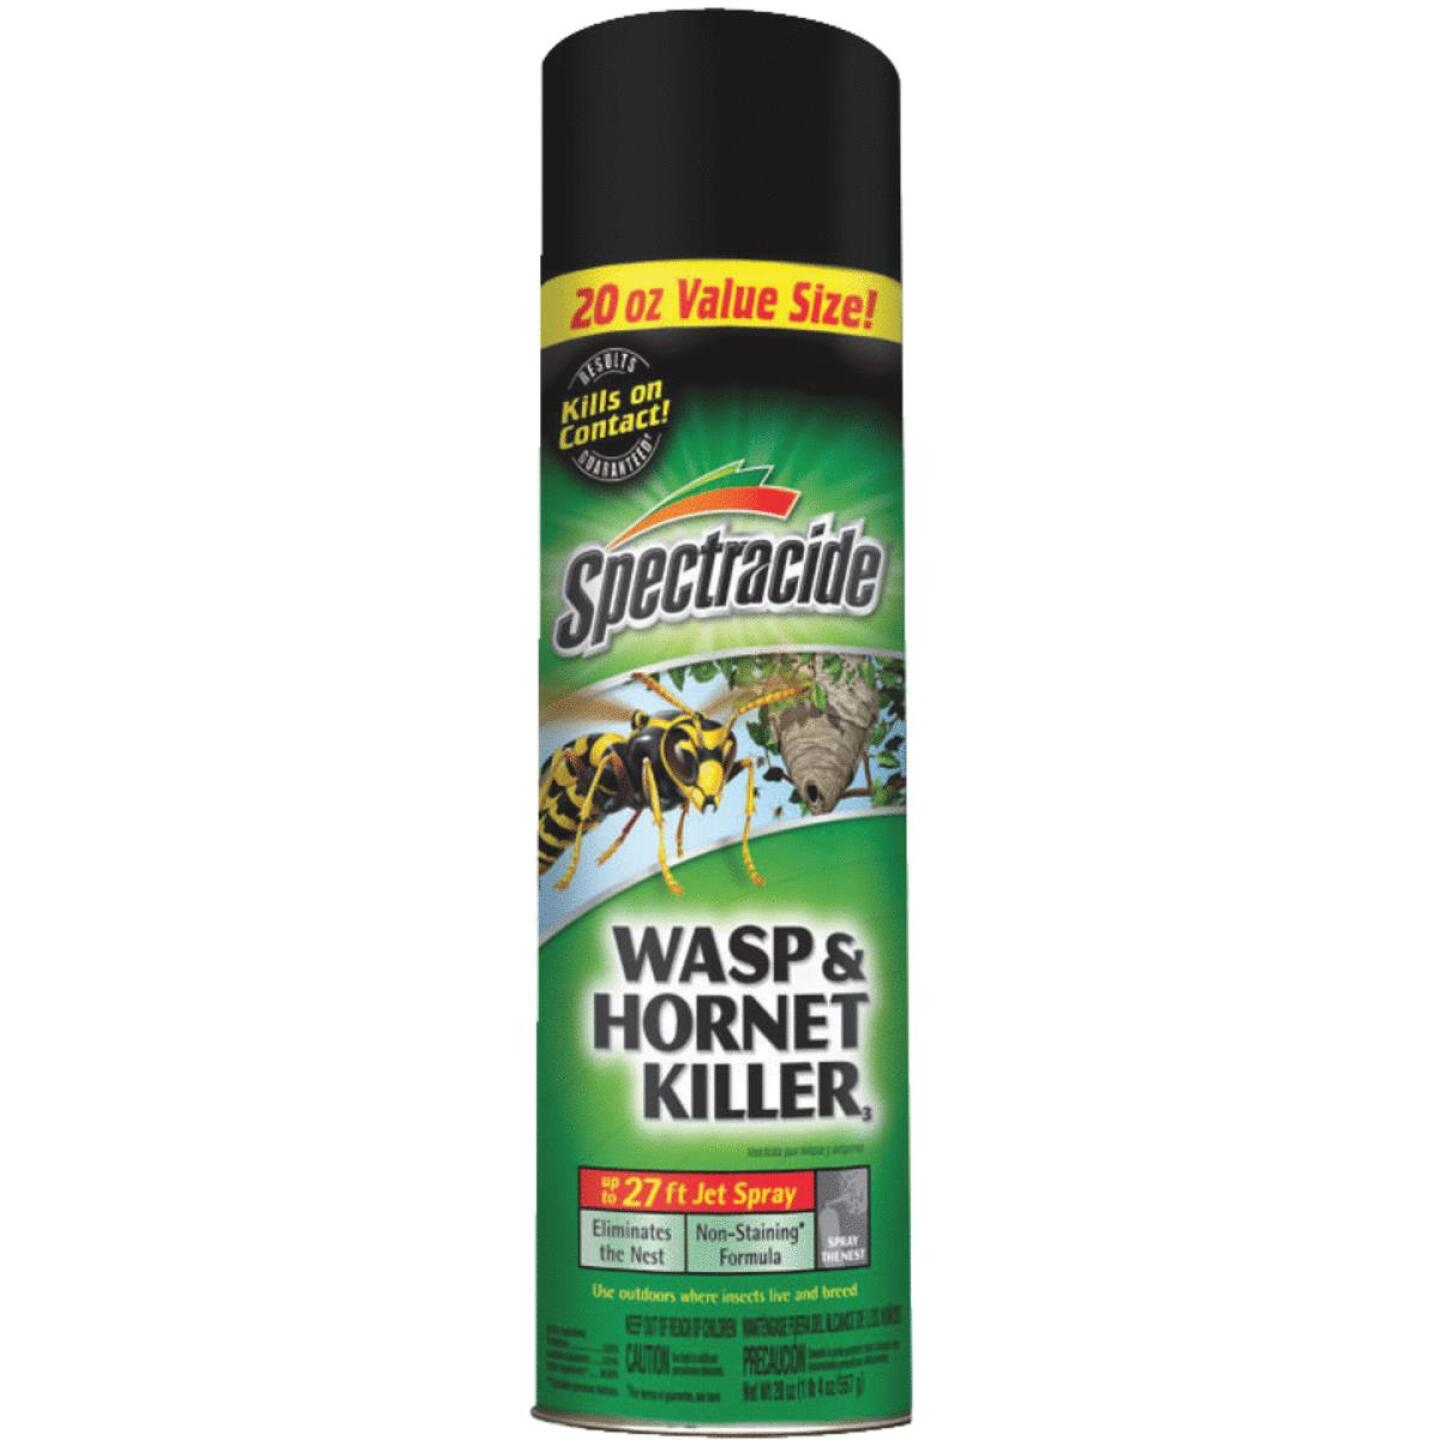 Spectracide 20 Oz. Liquid Aerosol Spray Wasp & Hornet Killer Image 1